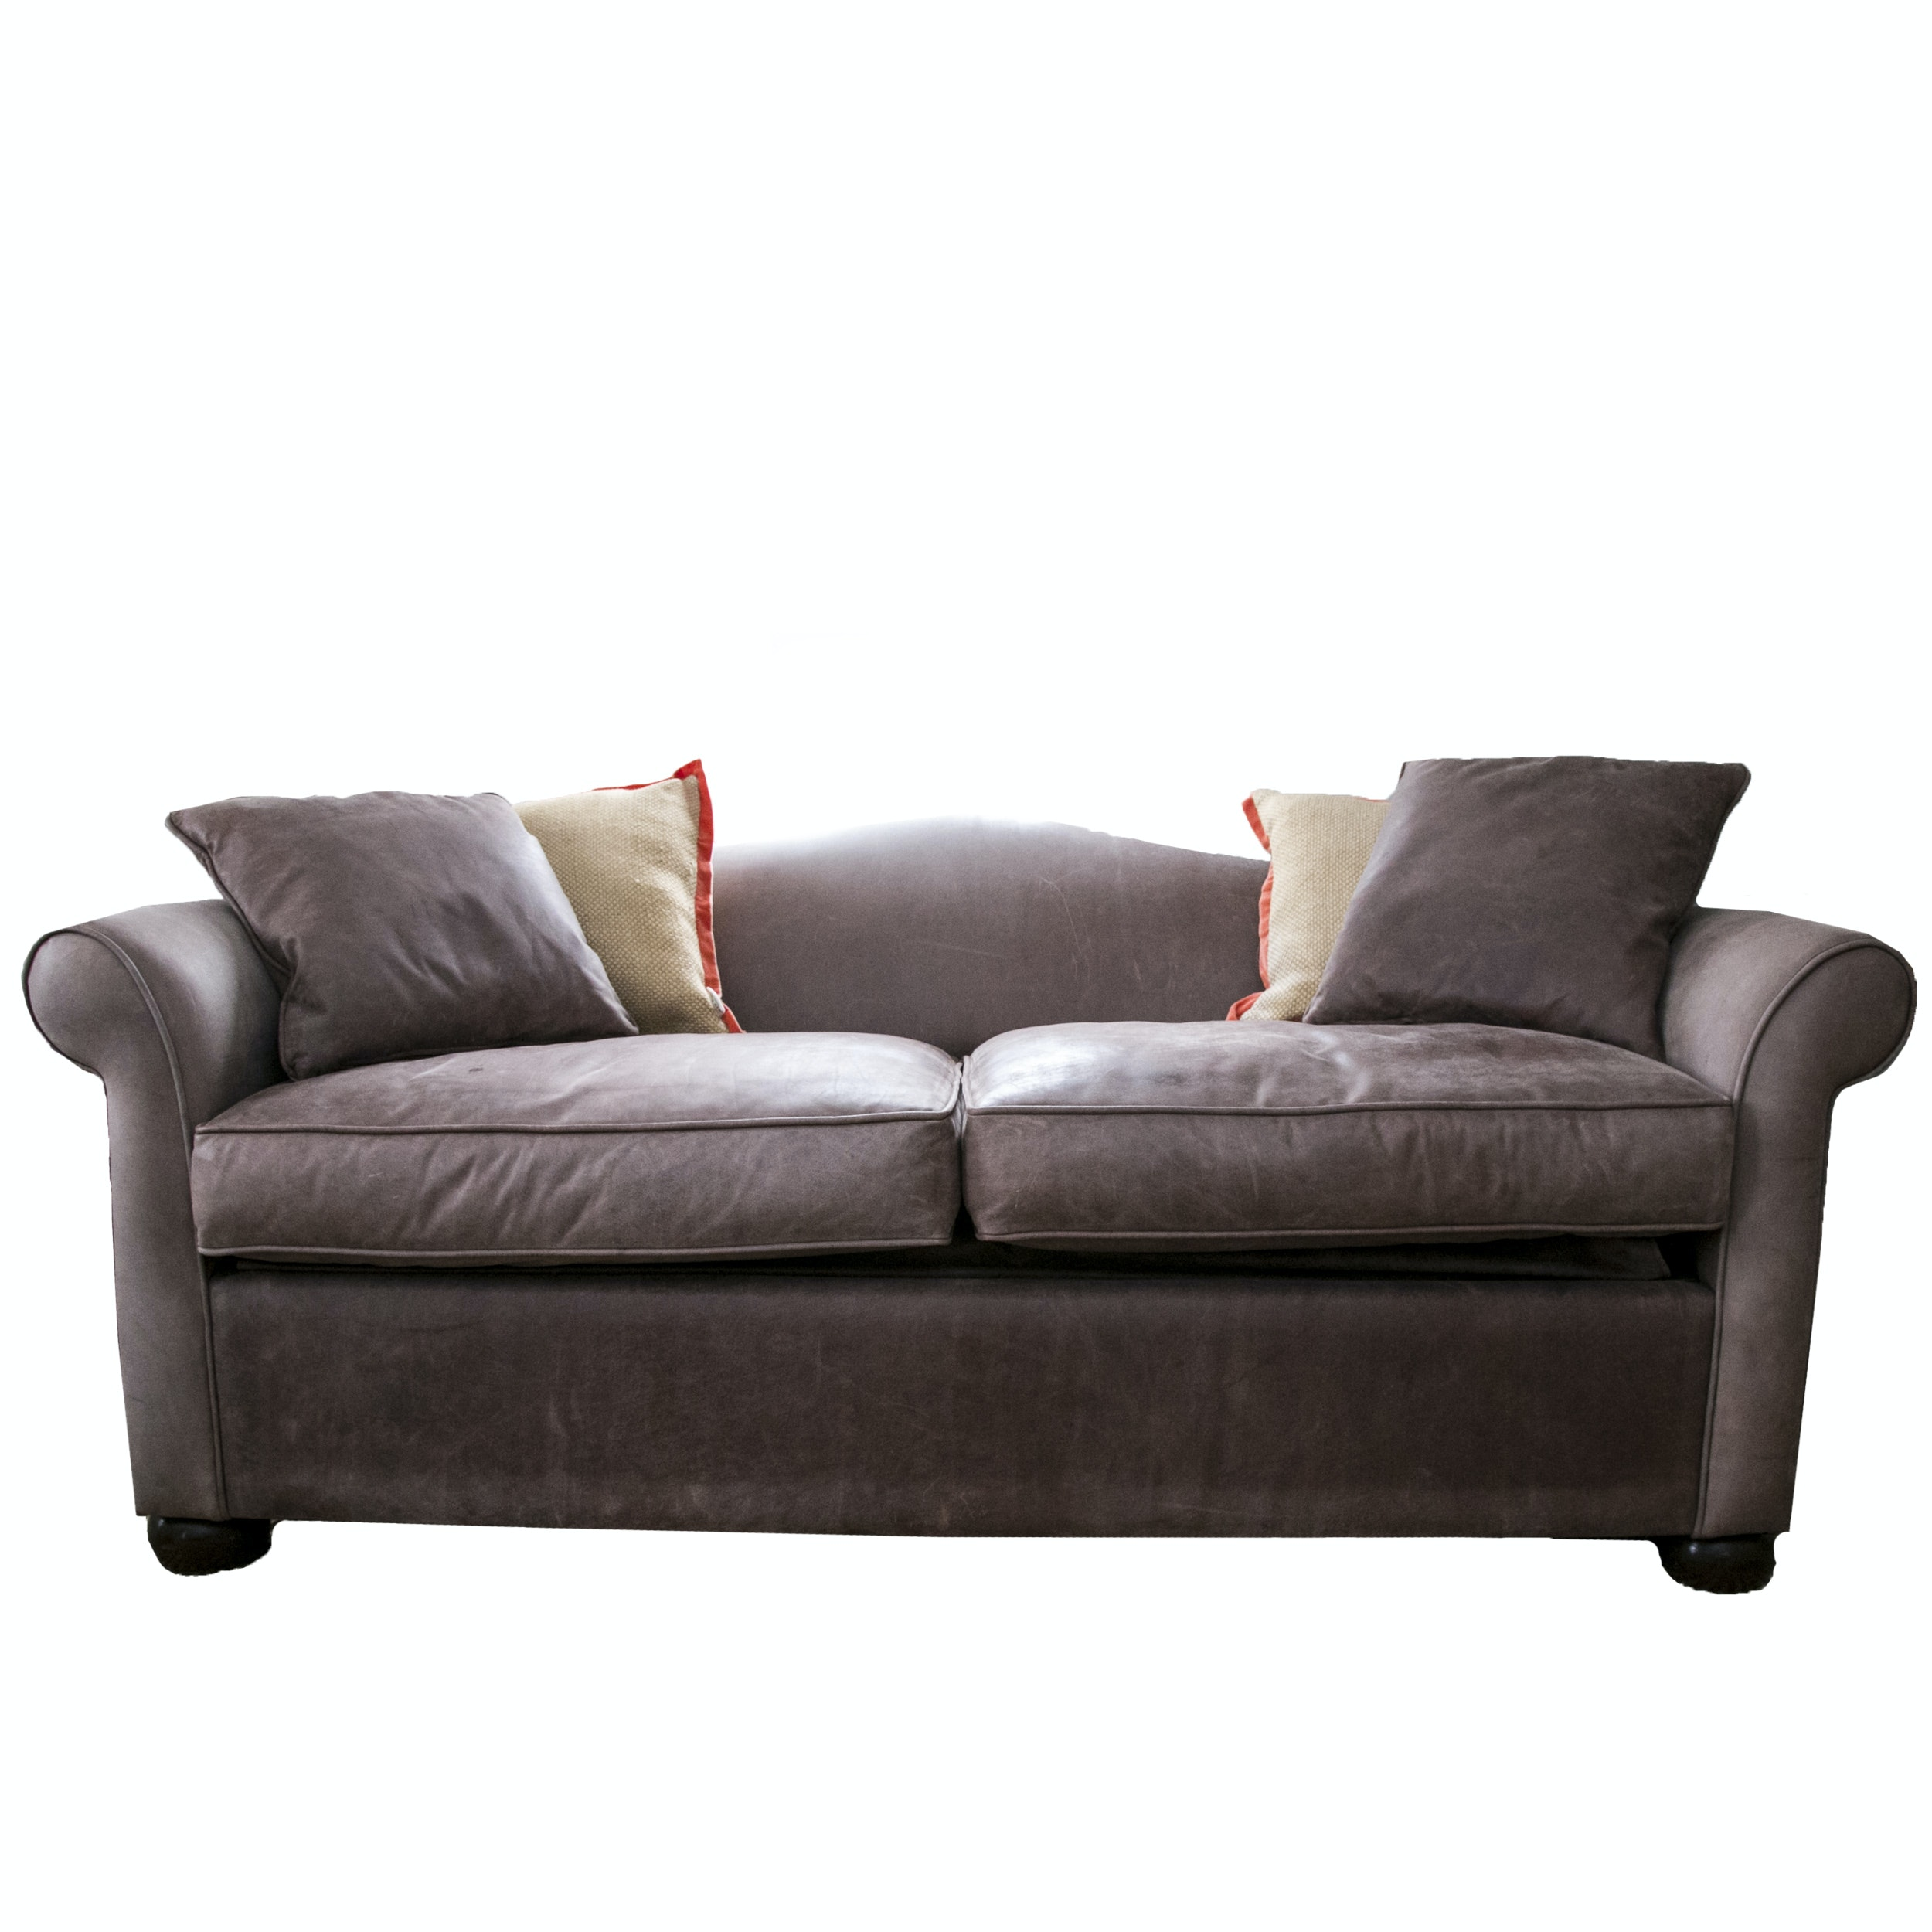 Leathercraft Chesterfield Sofa EBTH